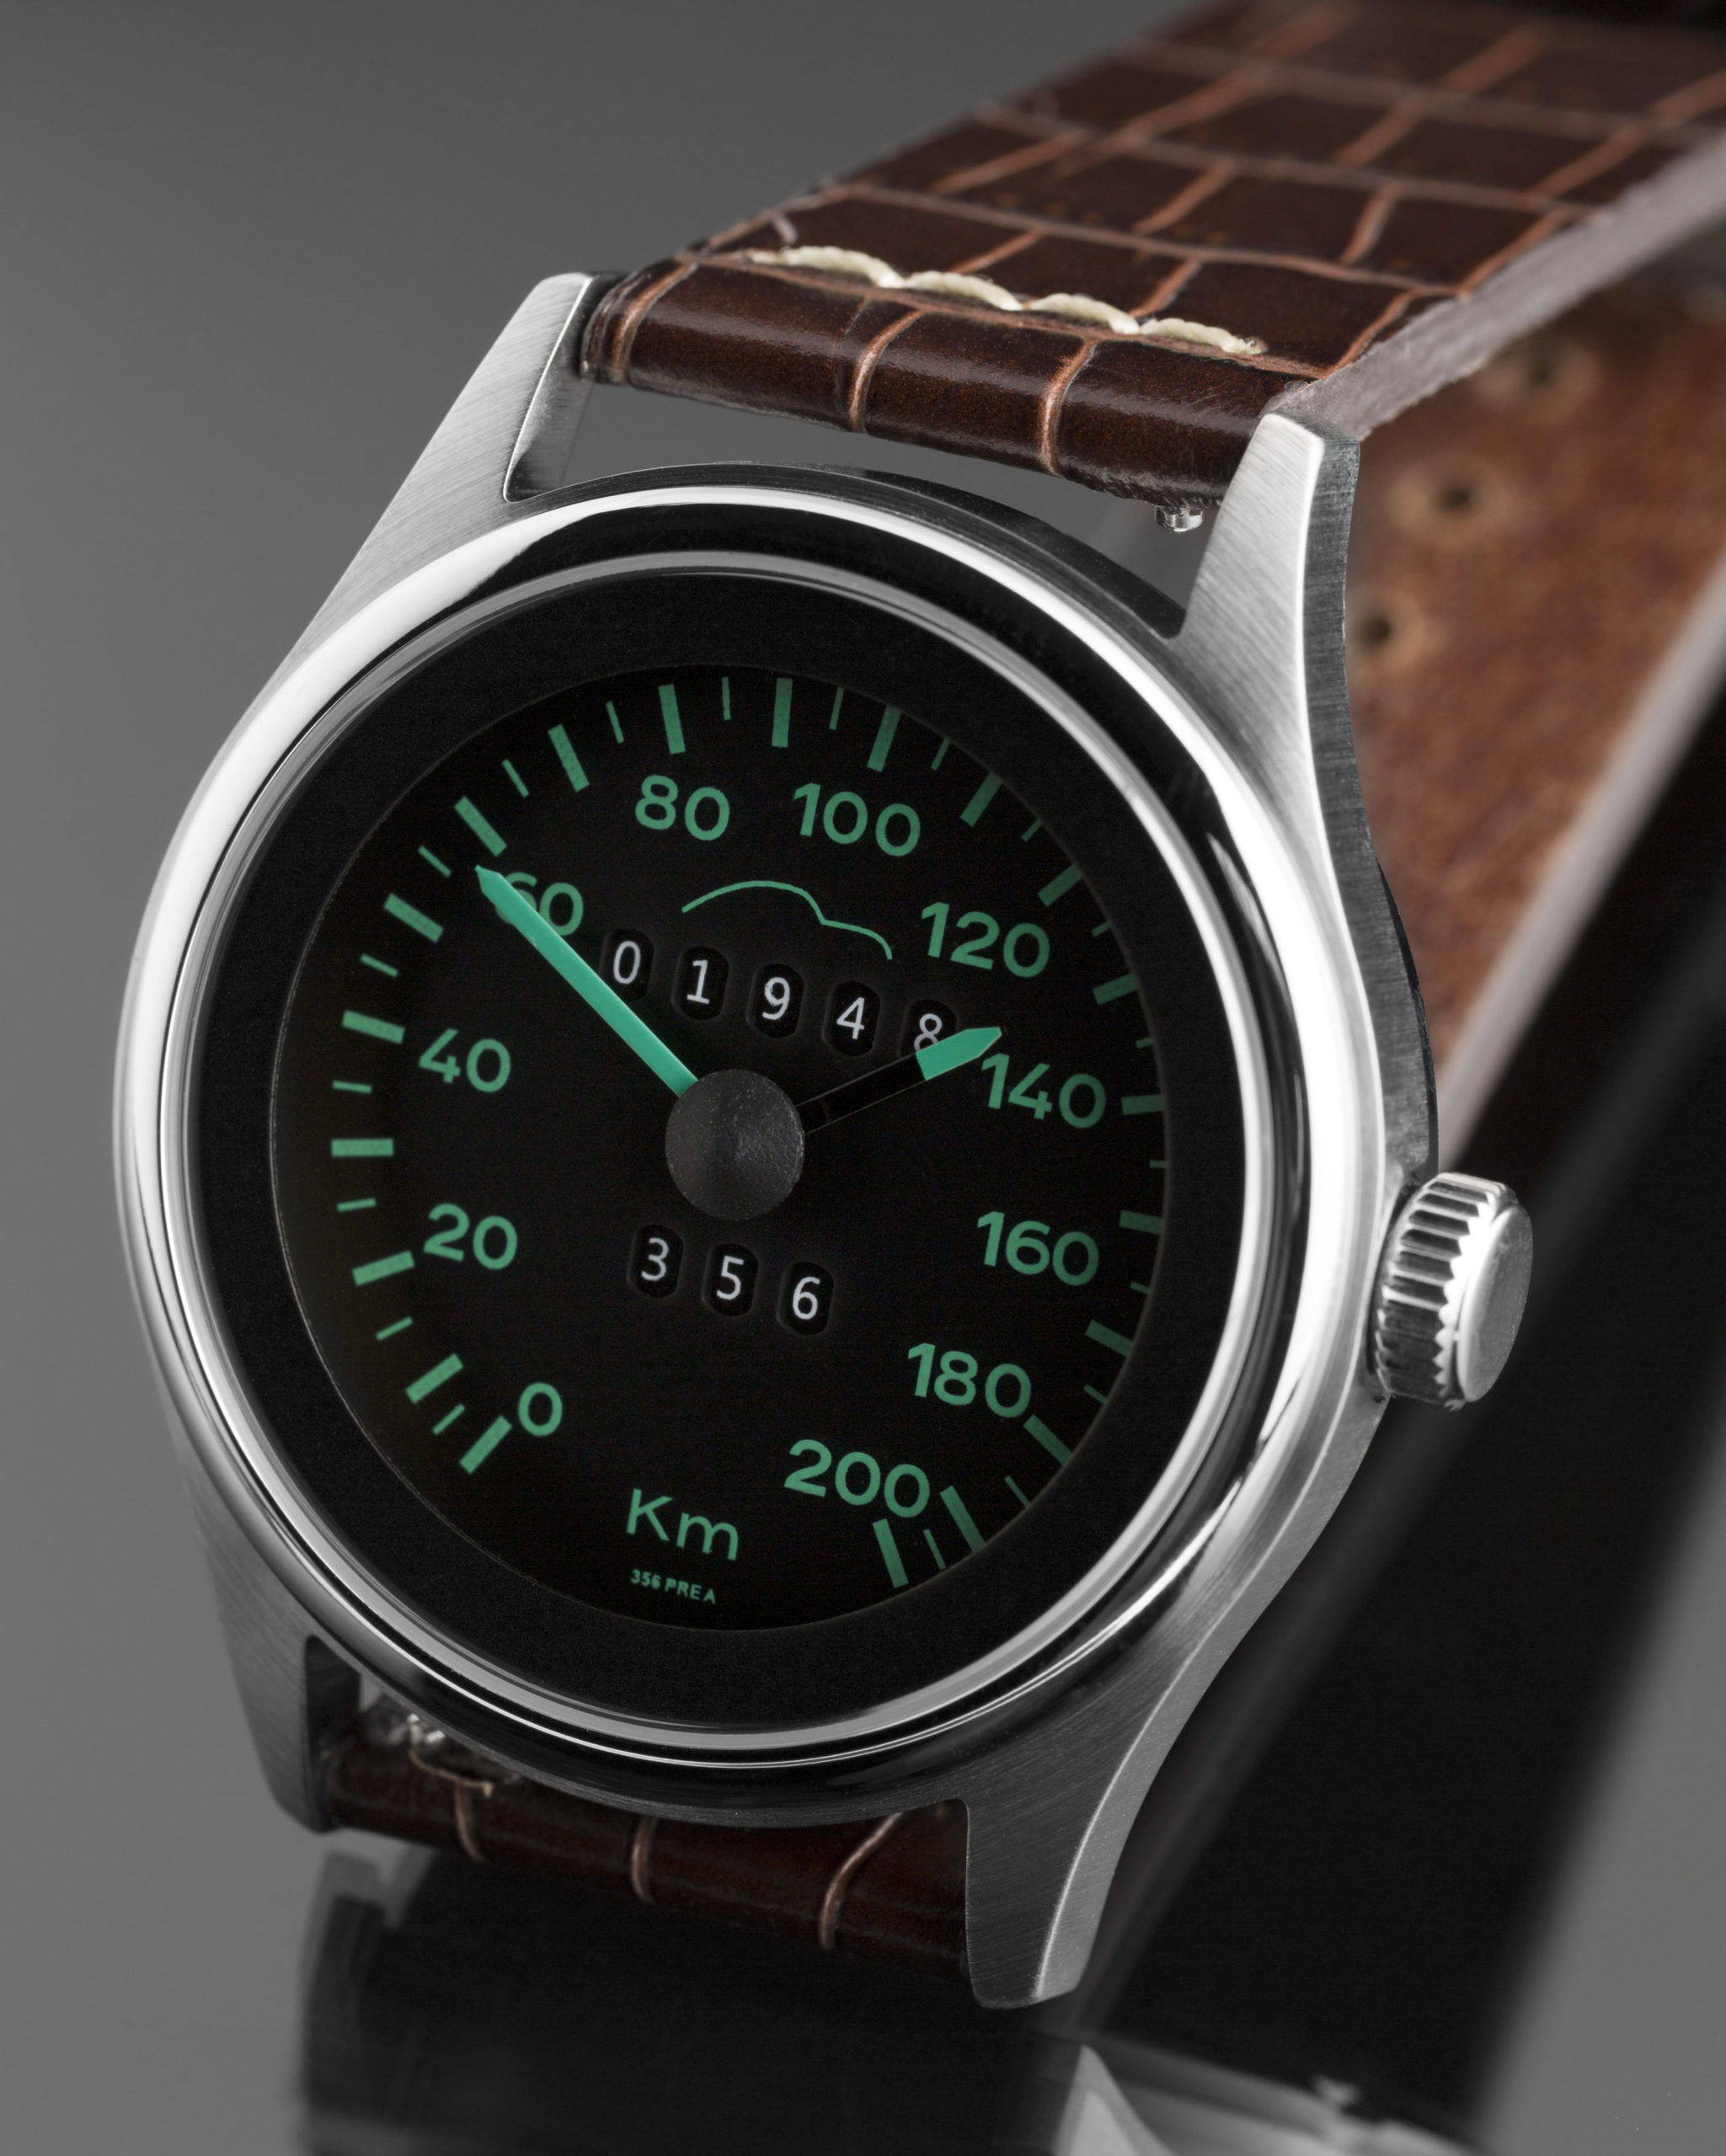 Bergmann Watches Tachometer 356